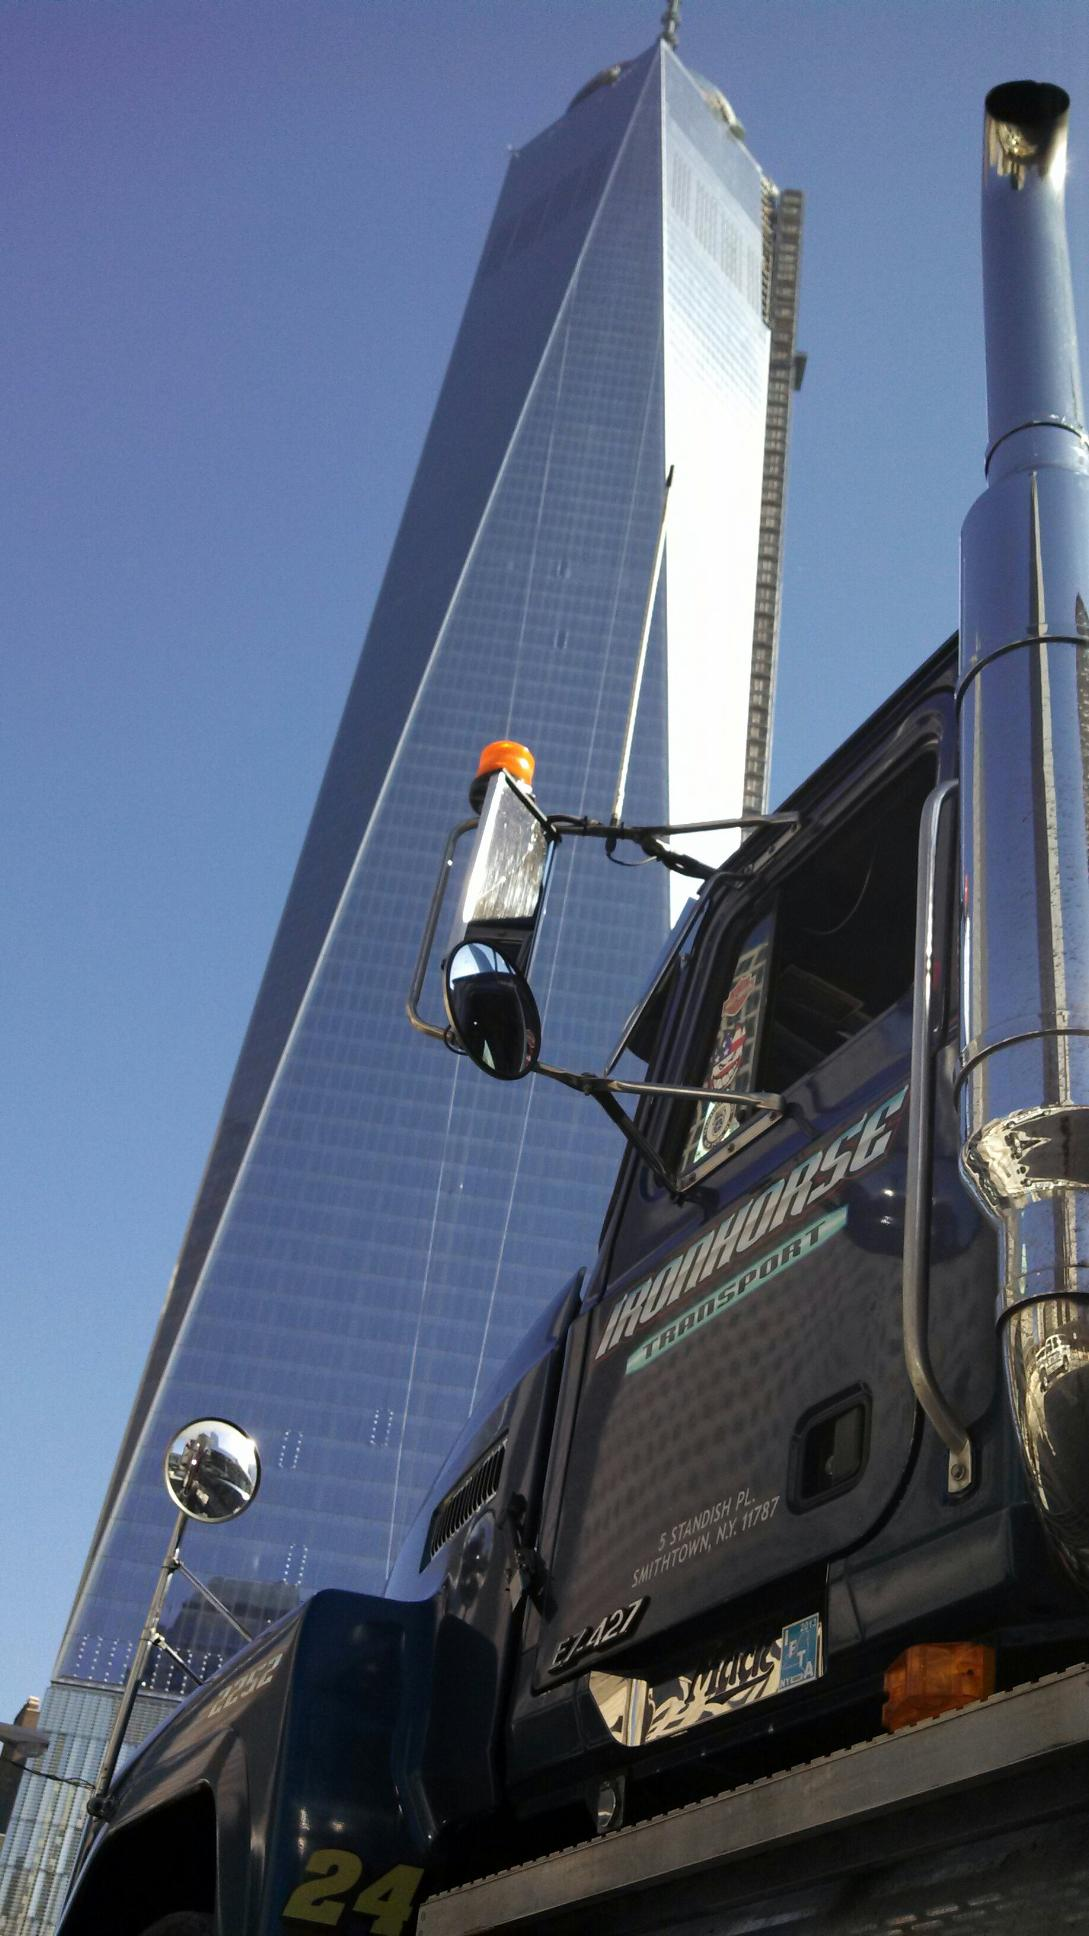 Iron Horse Transport Truck parked in front of Freedom Tower NYC